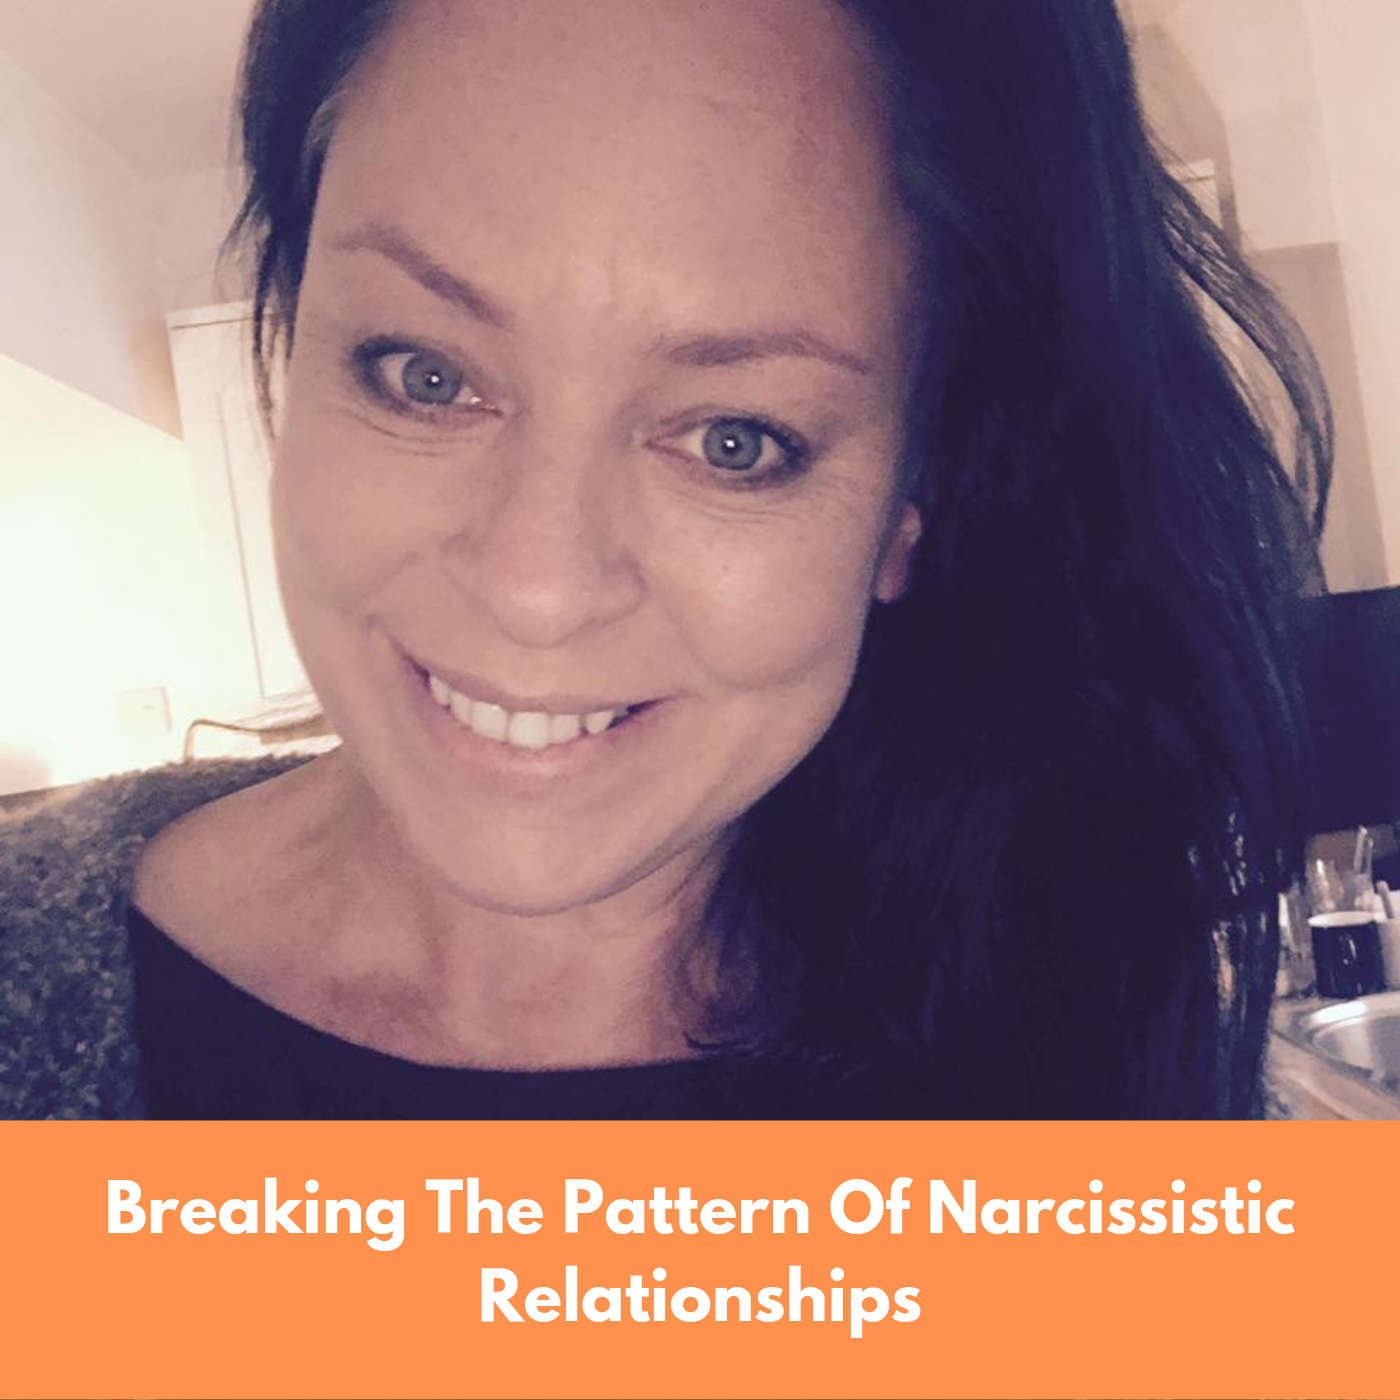 Breaking The Pattern Of Relationships With Narcissistic Men